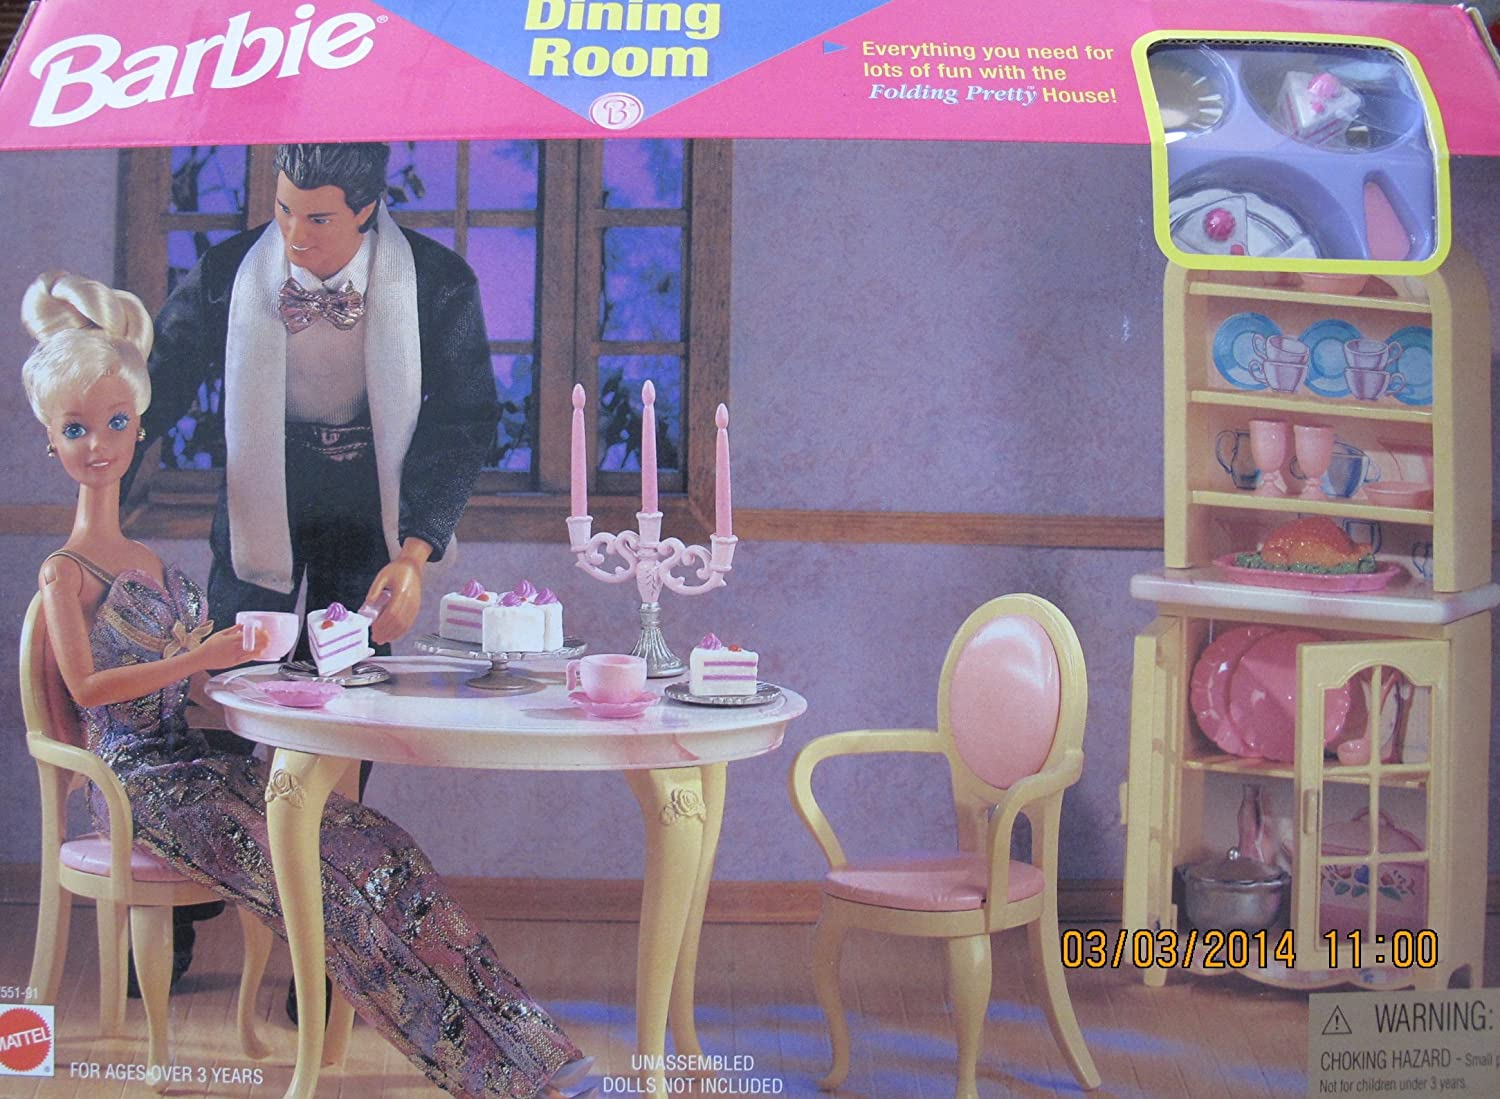 Barbie DINING ROOM PLAYSET Can Be Used w FOLDING PRETTY HOUSE (1996 Arcotoys, Mattel)